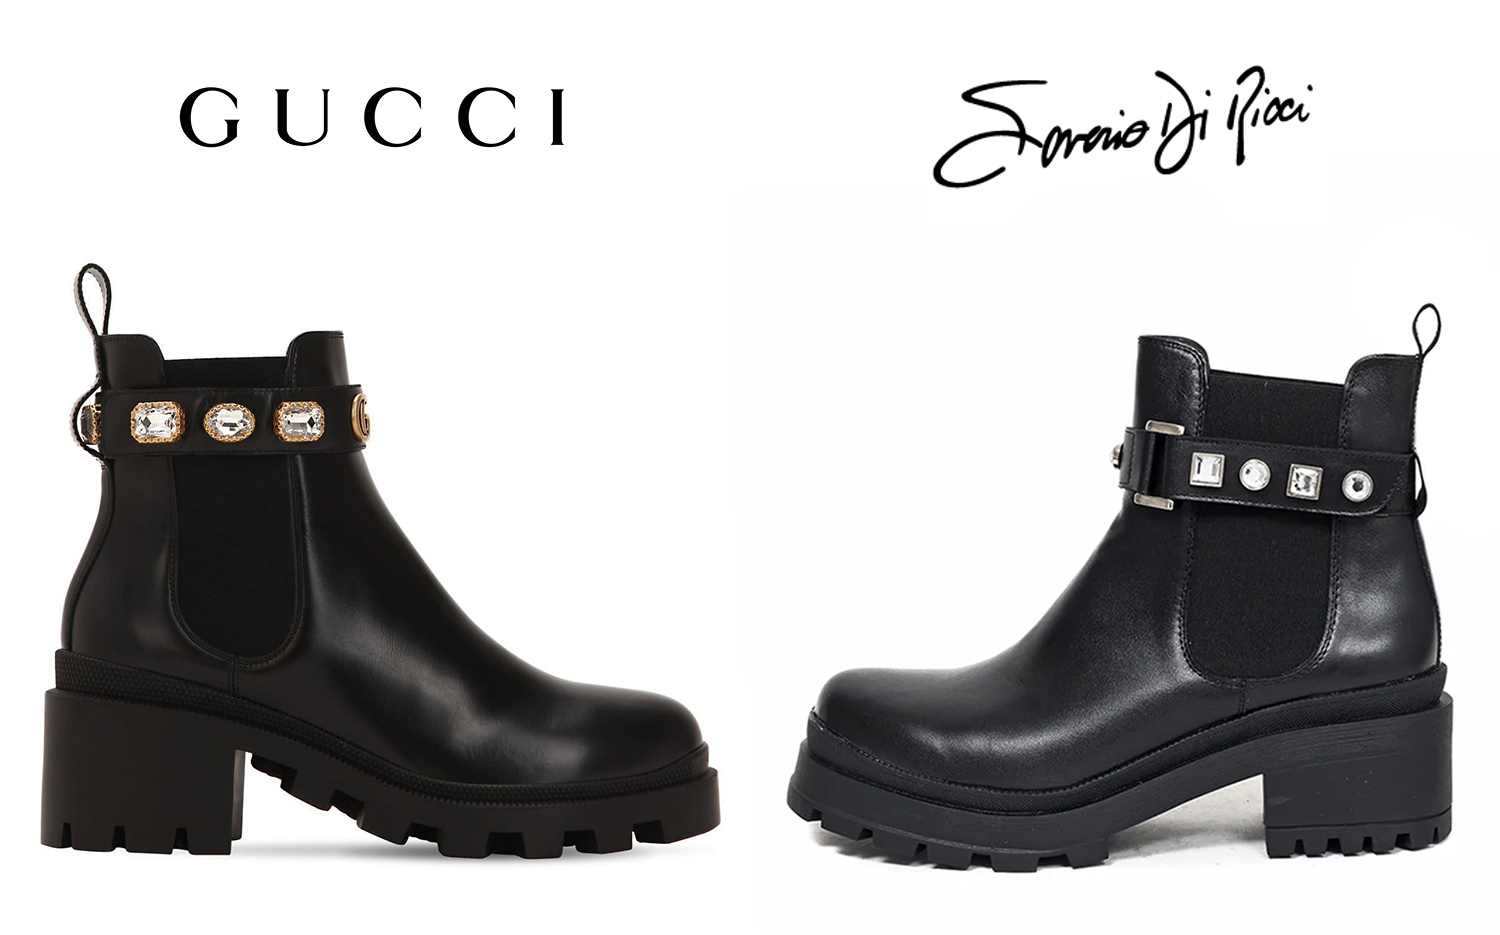 Copias_Argentinas_Inspiraciones_Marcas_que_Copian_Gucci_Leather_Ankle_Boots_Belt_Embellished_Jeweled_Saverio_di_Ricci_Botas_Julia.jpg